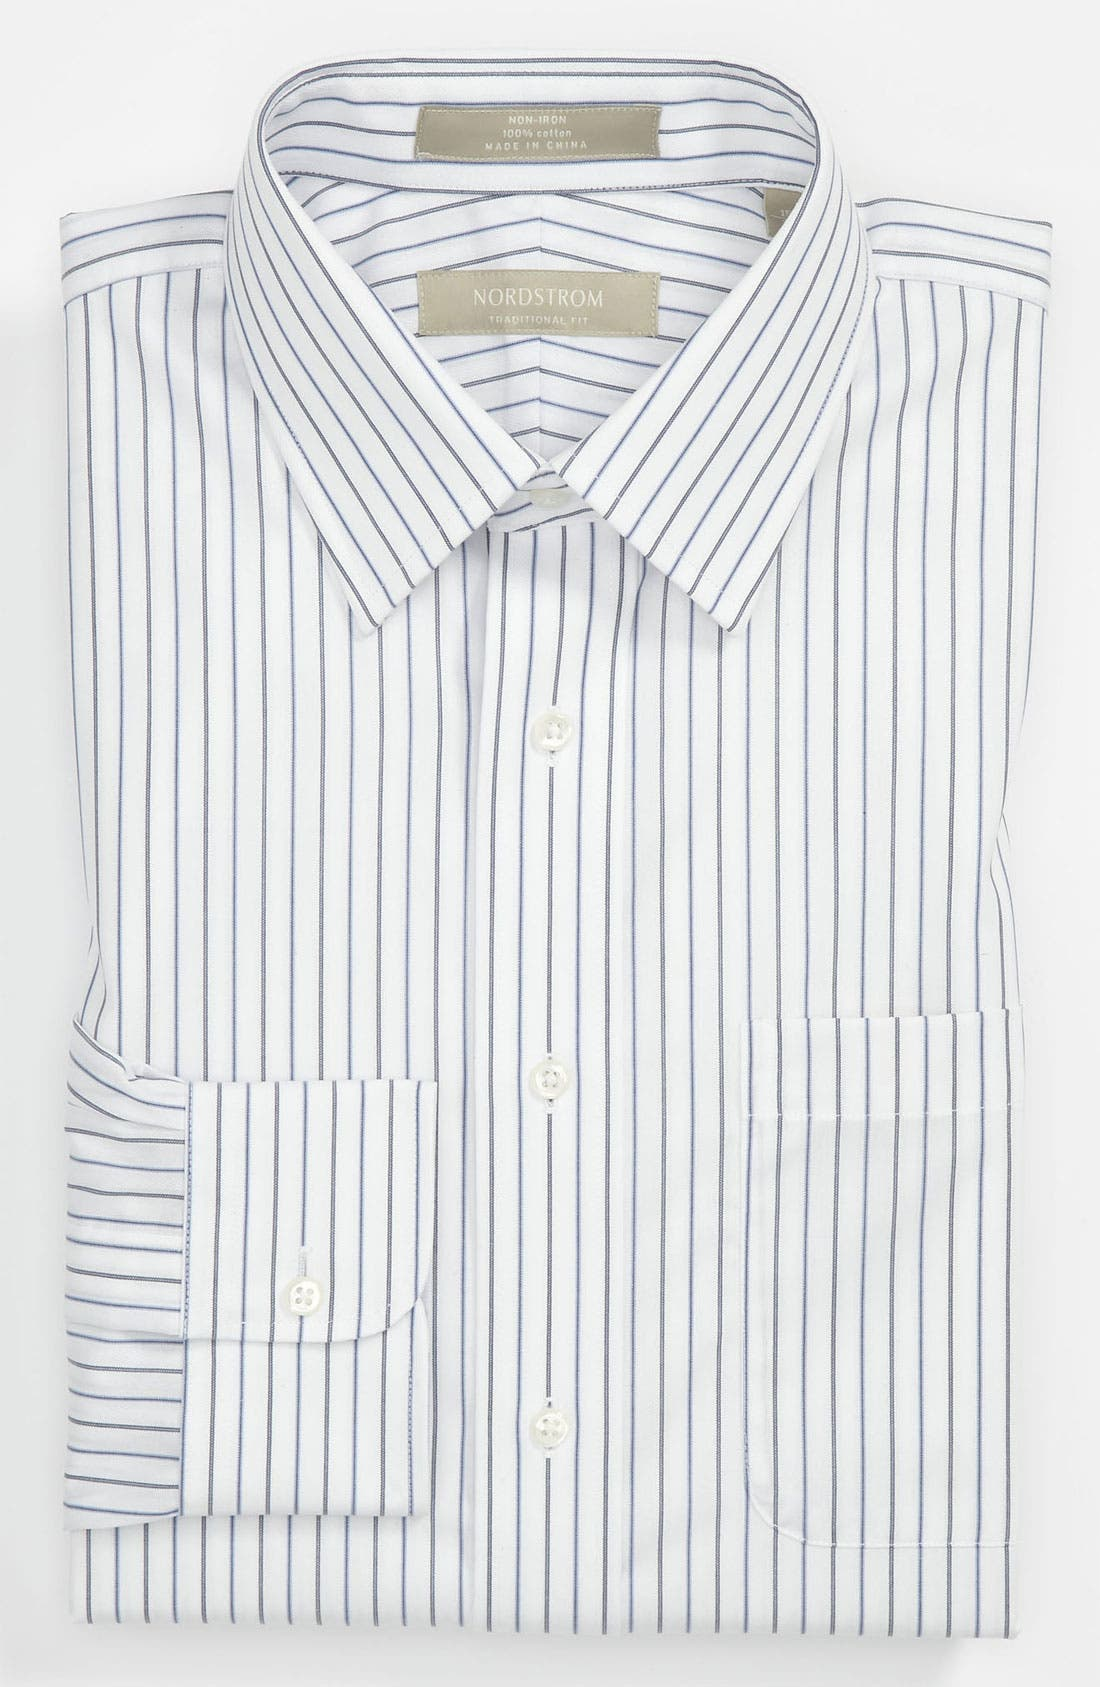 Alternate Image 1 Selected - Nordstrom Traditional Fit Non-Iron Stripe Dress Shirt (Online Only)